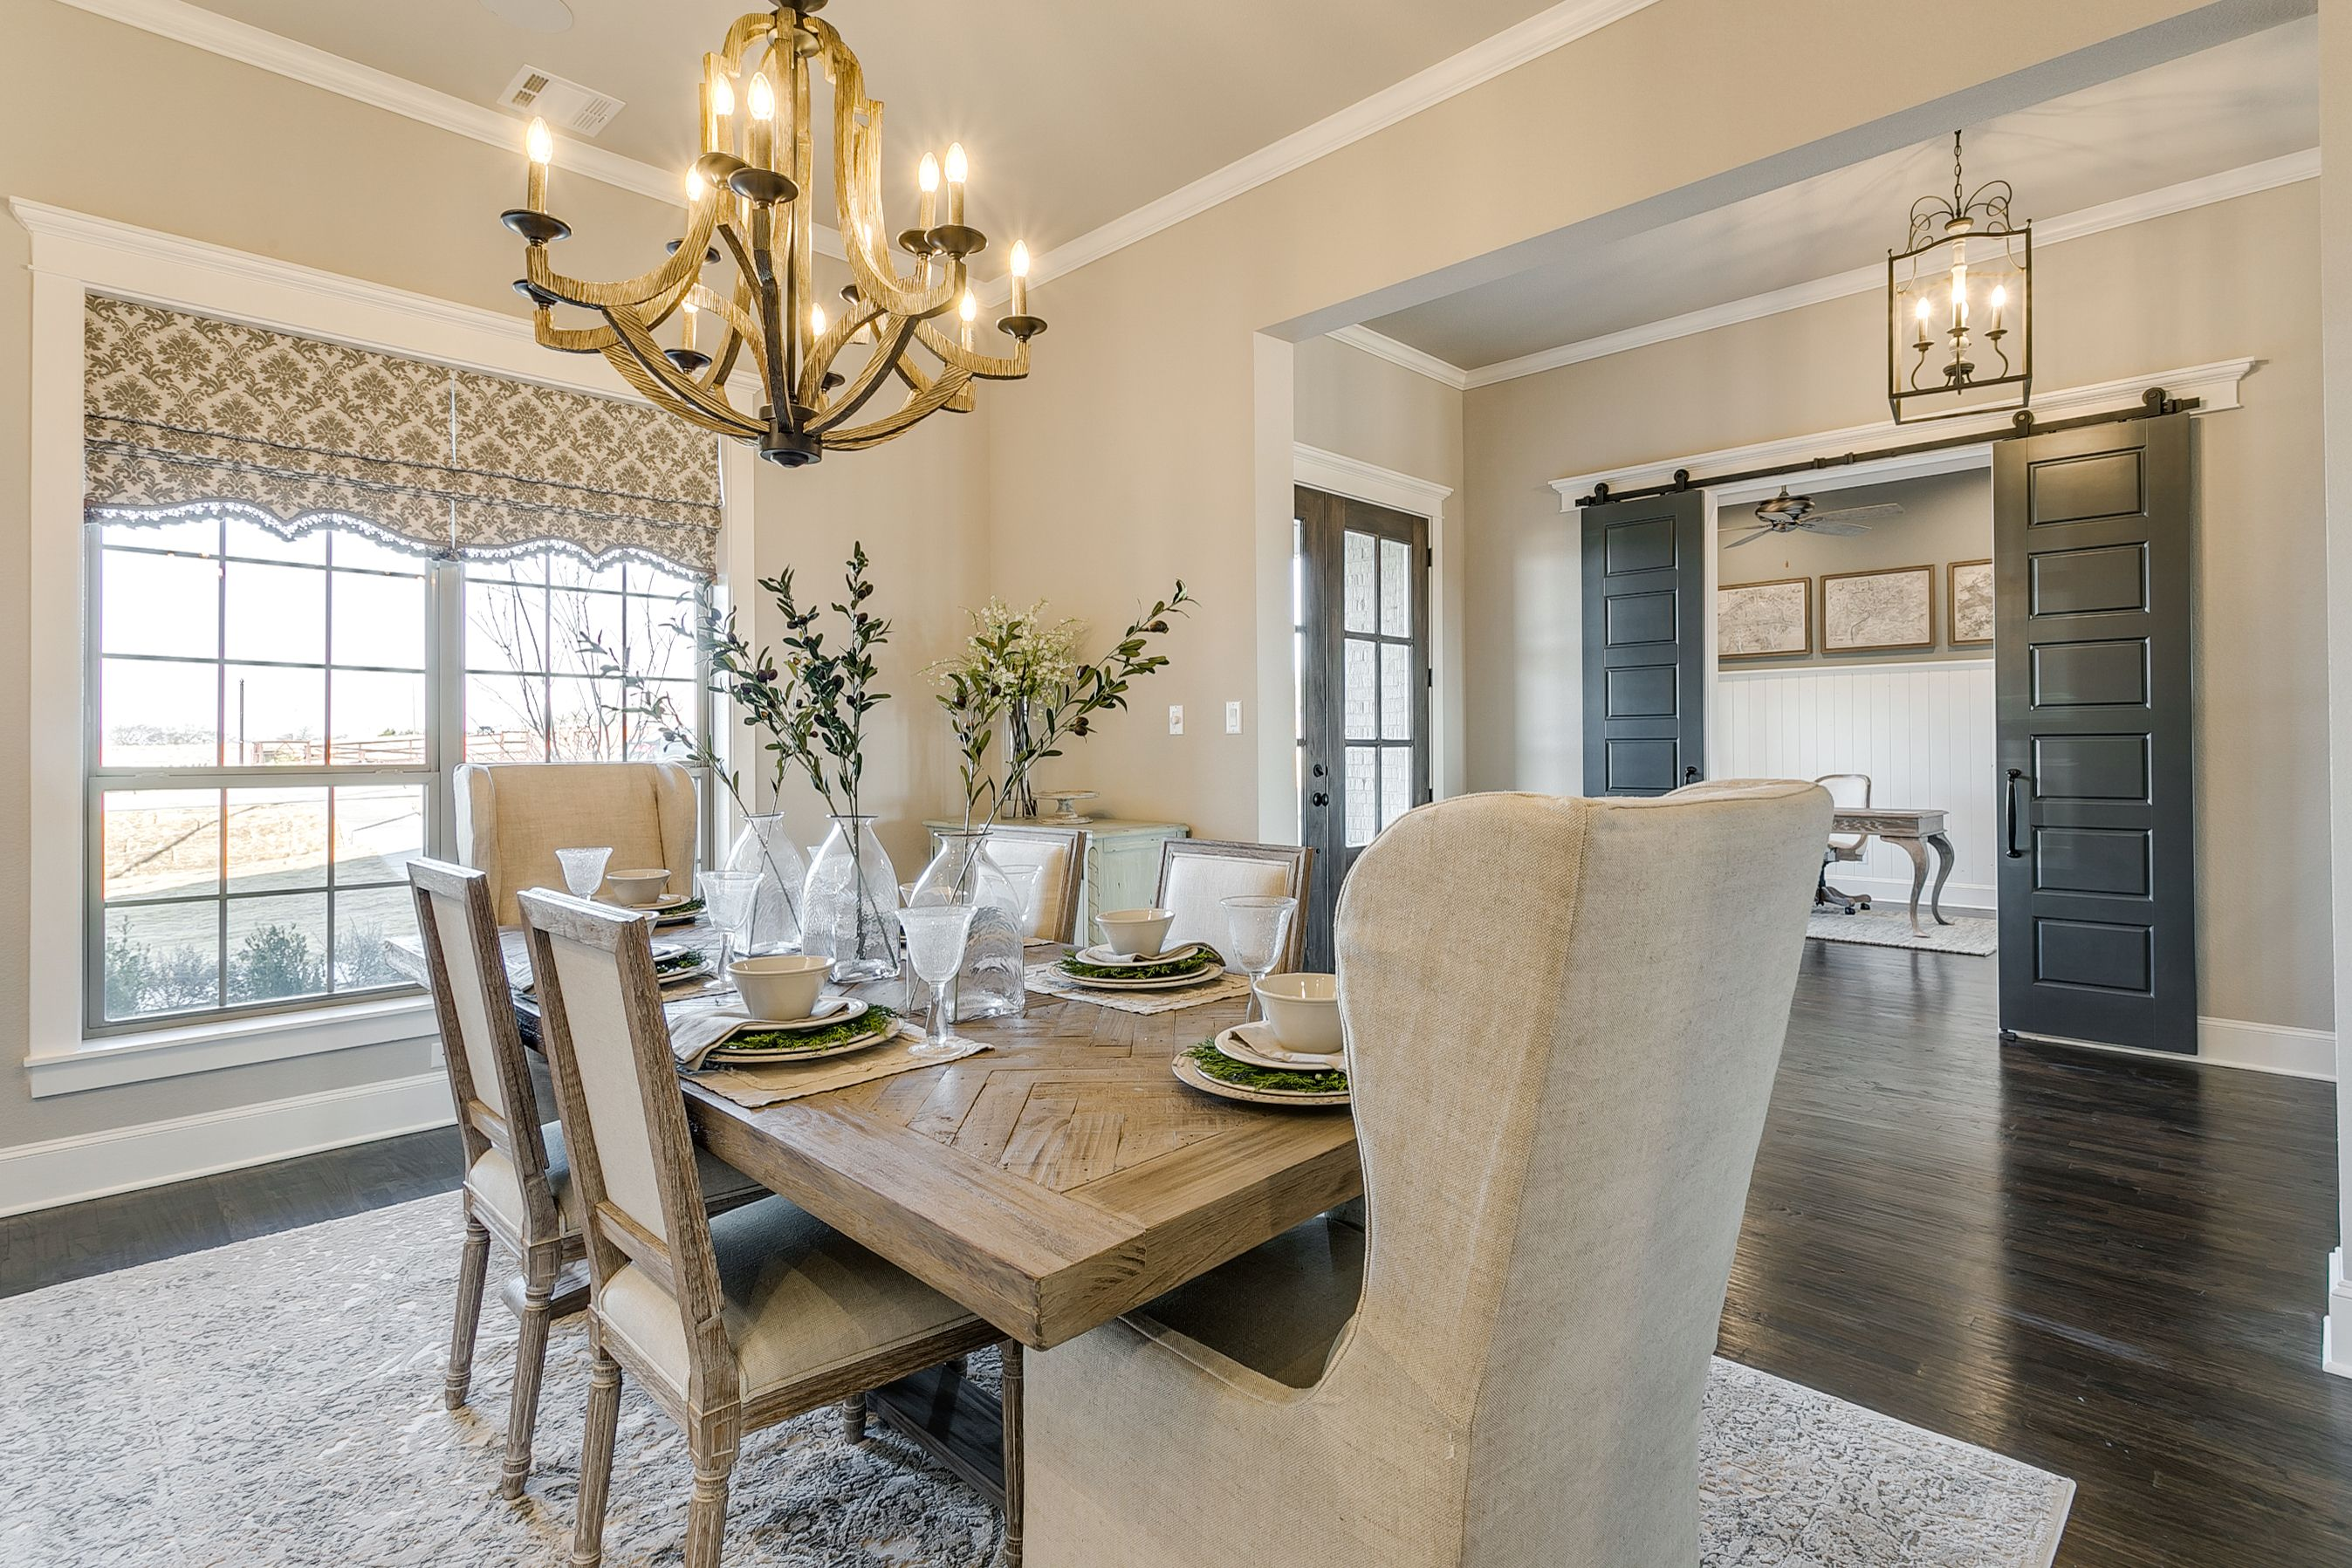 Dining Room At Entry With Wood Floors And Chandelier Legacy